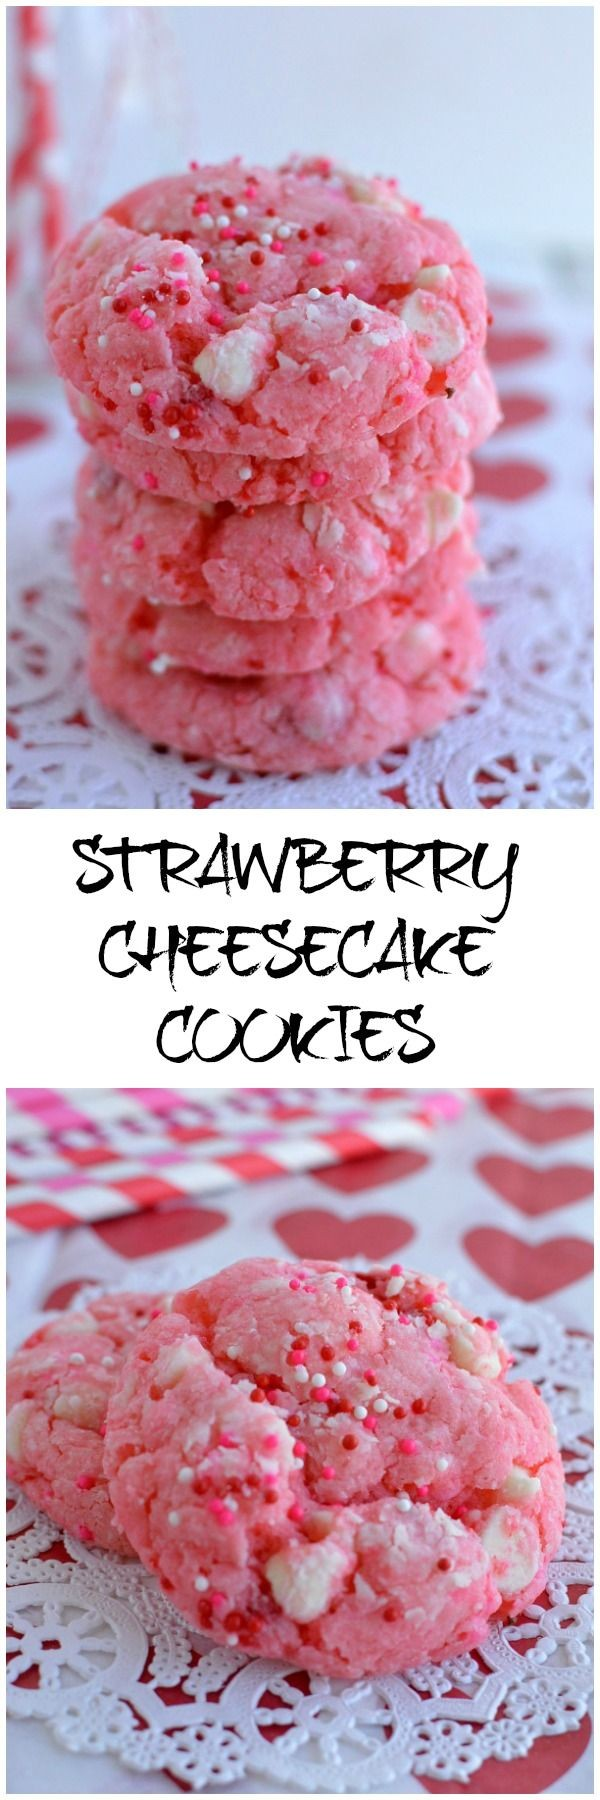 Get the recipe Strawberry Cheesecake Cookies @recipes_to_go